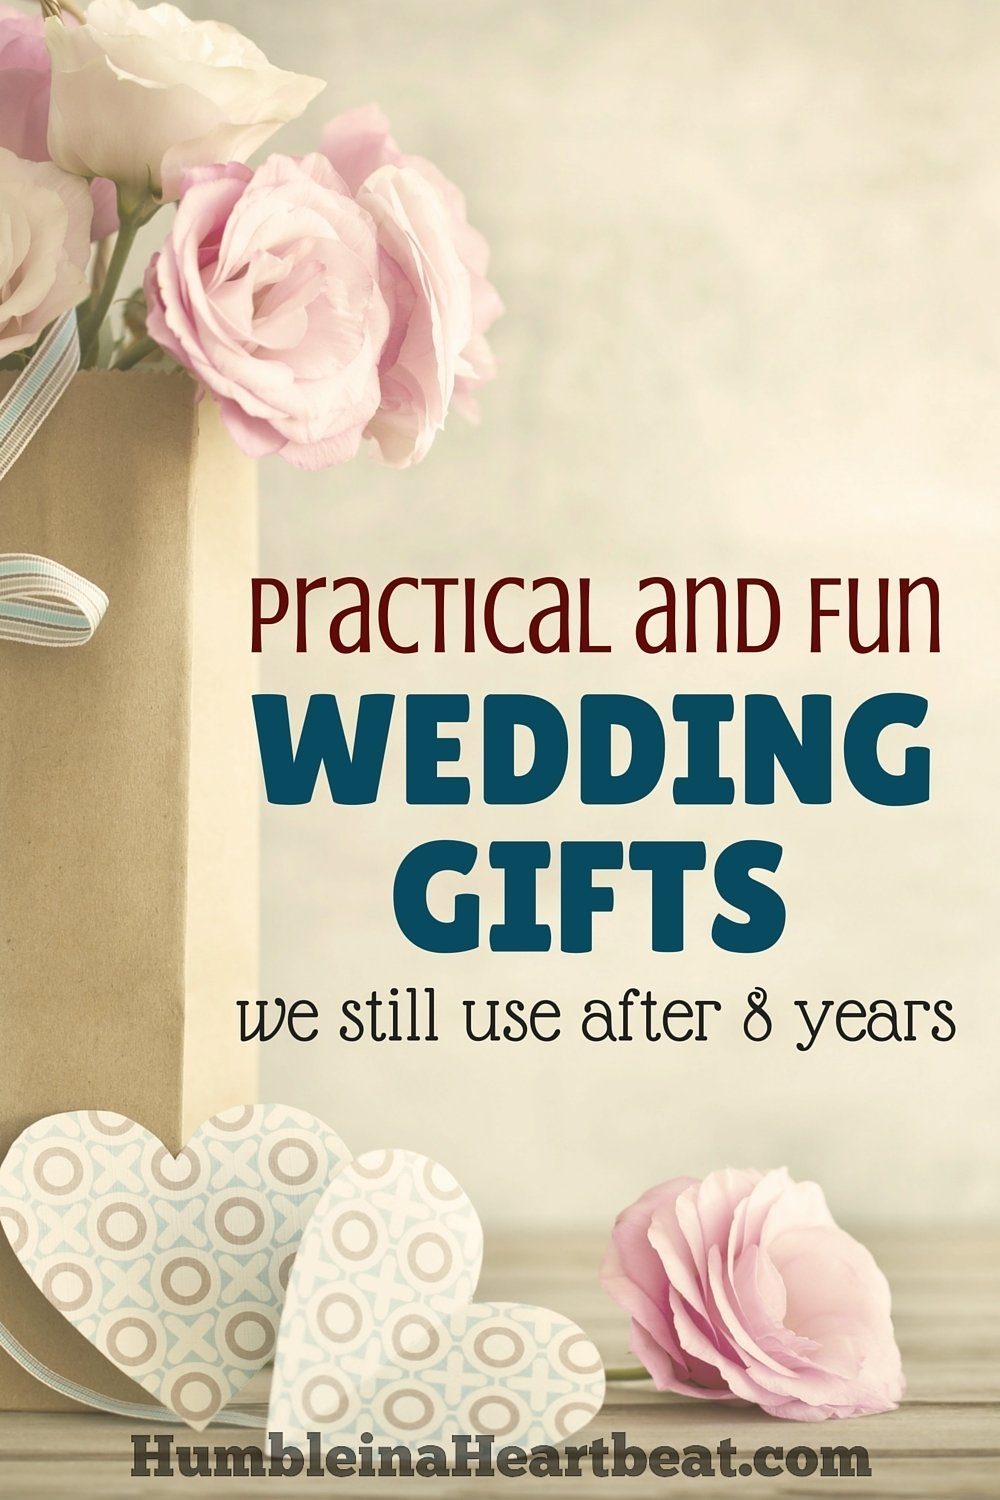 10 Fabulous Gift Ideas For Married Couples best wedding gift for newly married couple images wedding